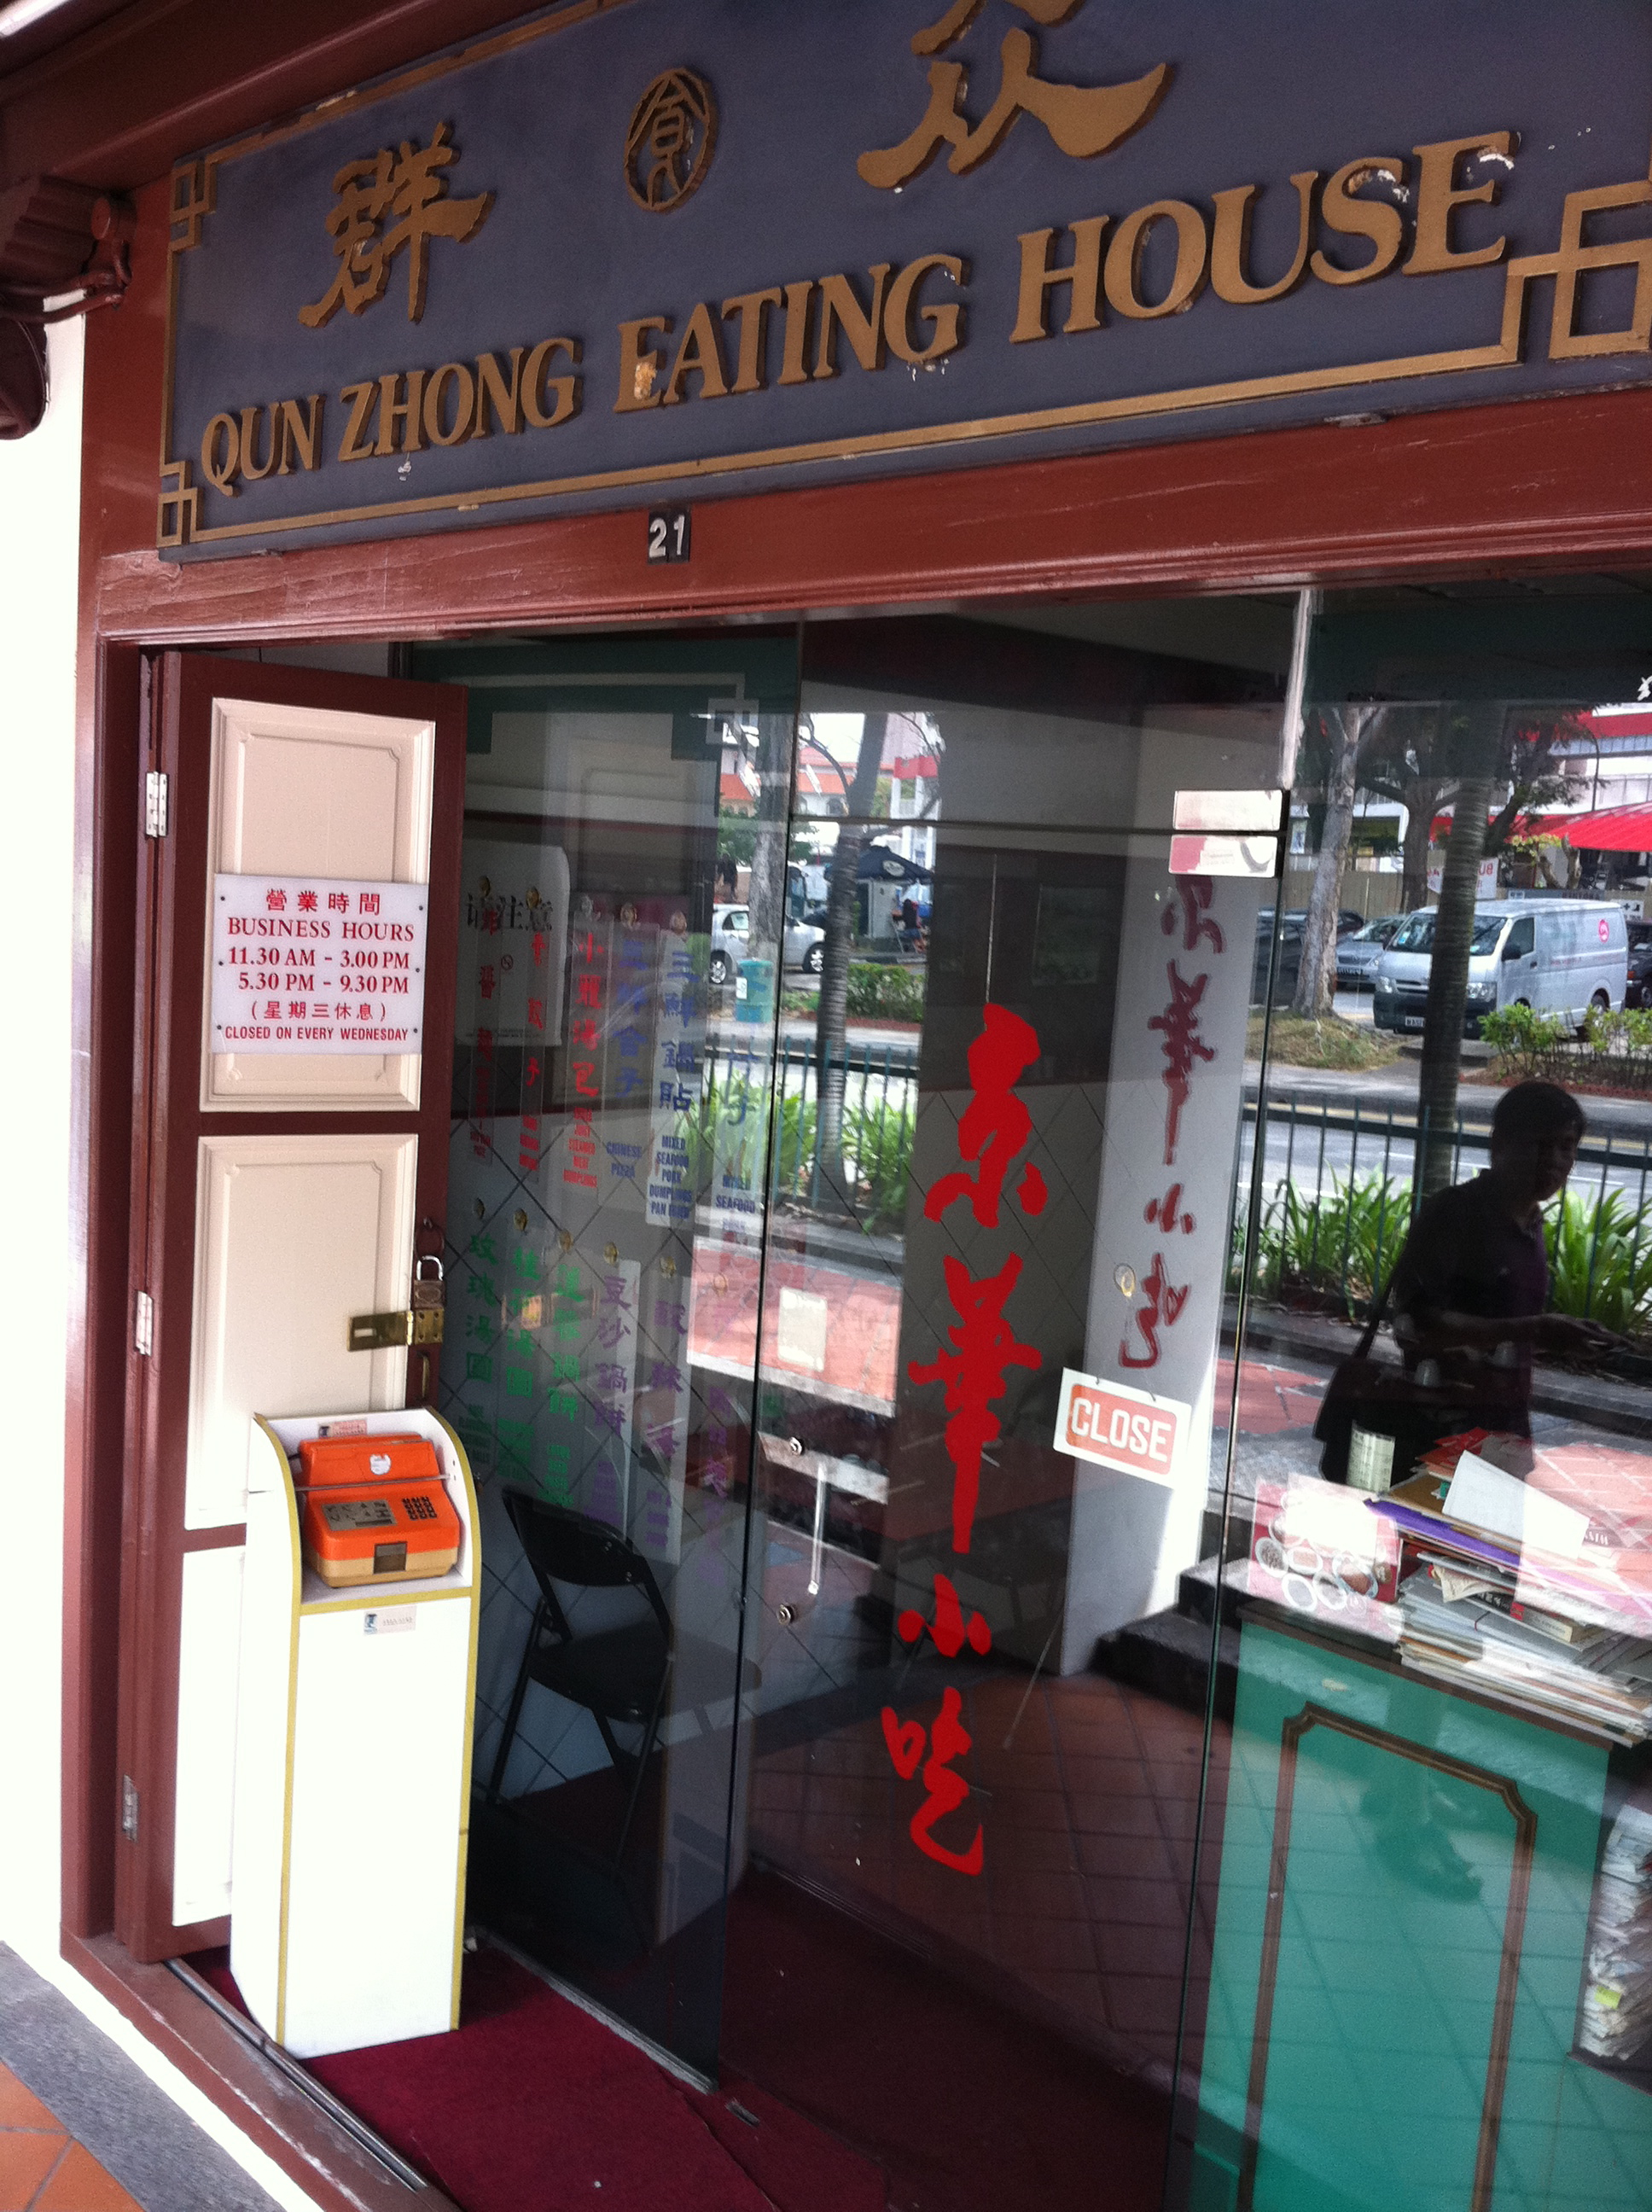 「Qun Zhong Eating House singapore bugis」の画像検索結果